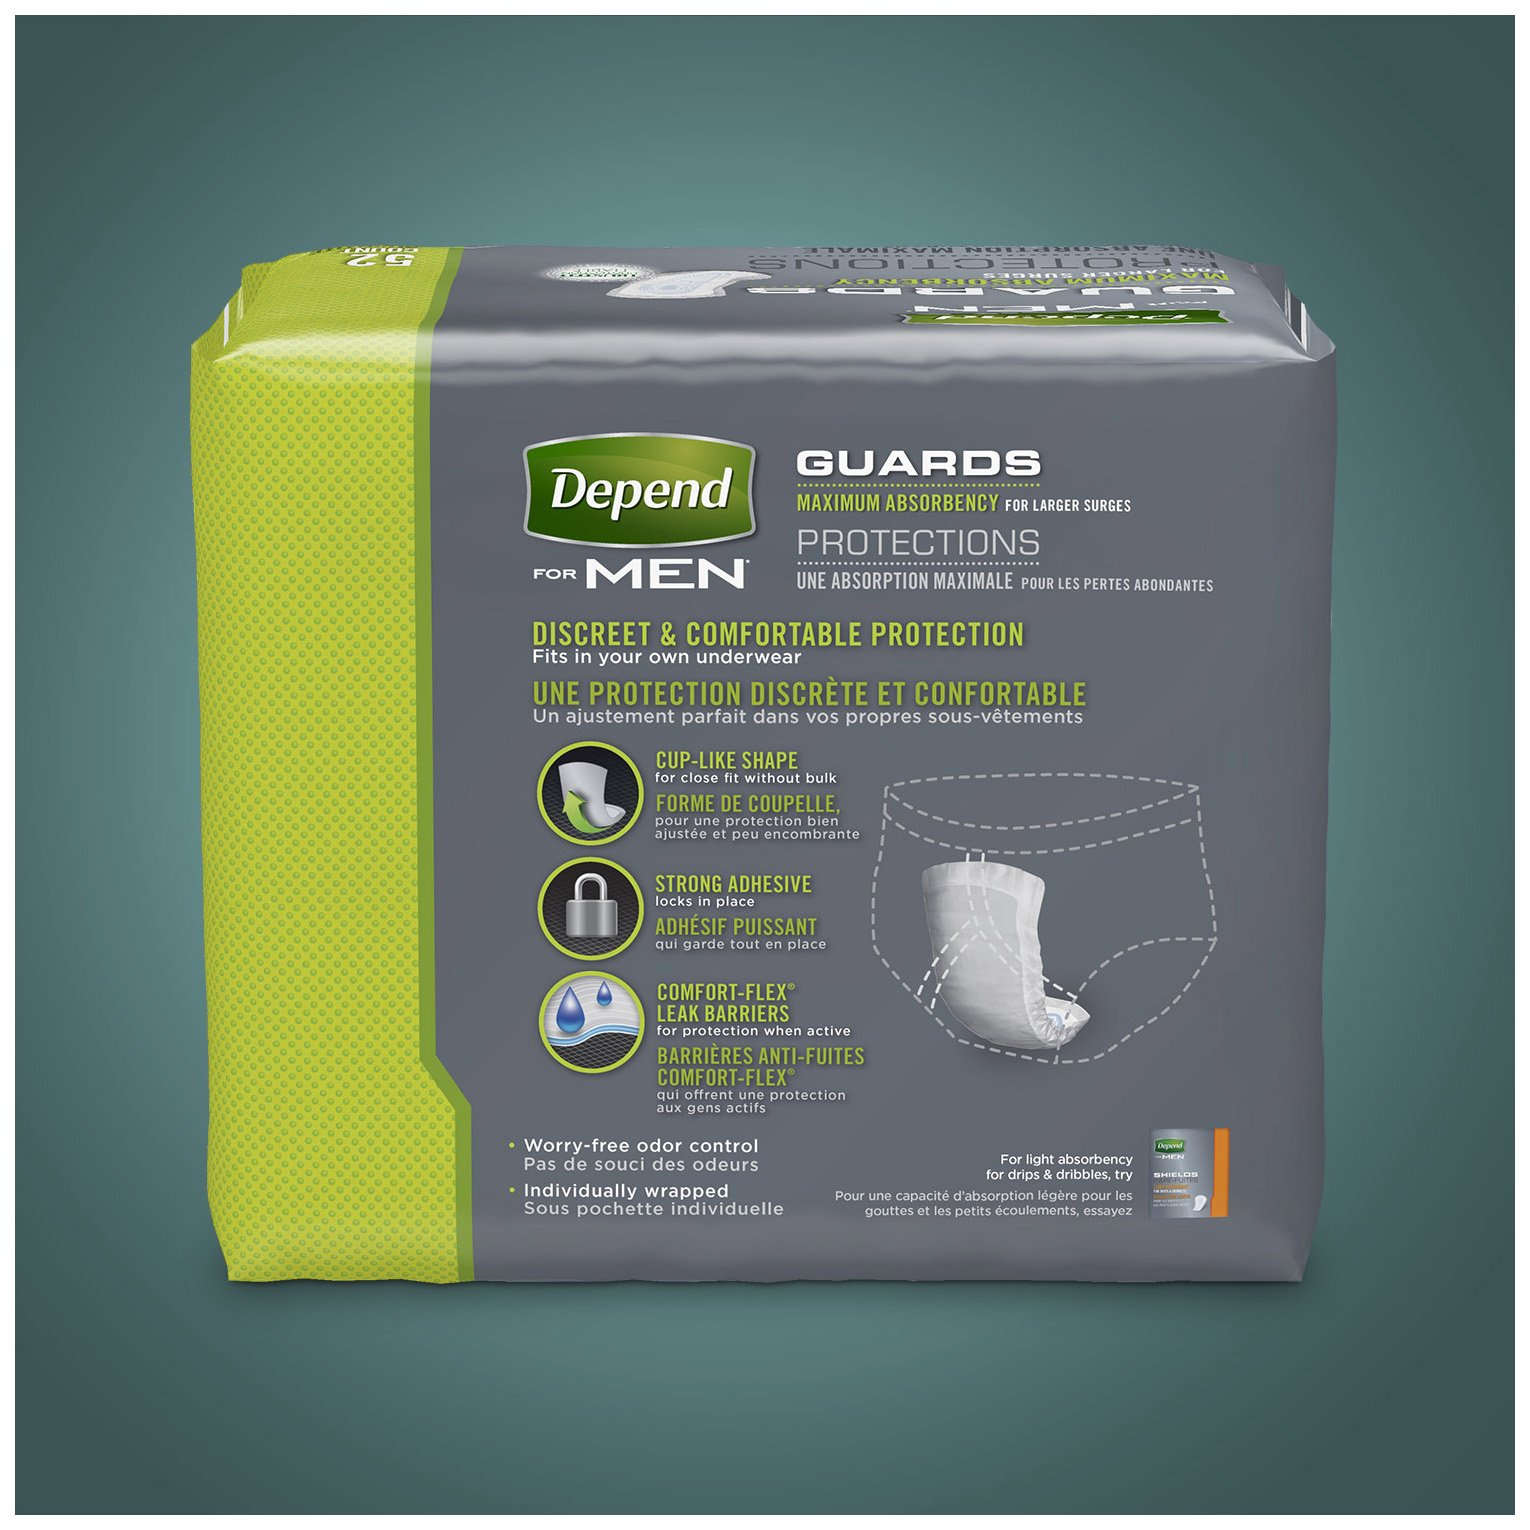 Depend Guards for Men, Maximum Absorbency Incontinence Protection, 52-Count , Pack of 4